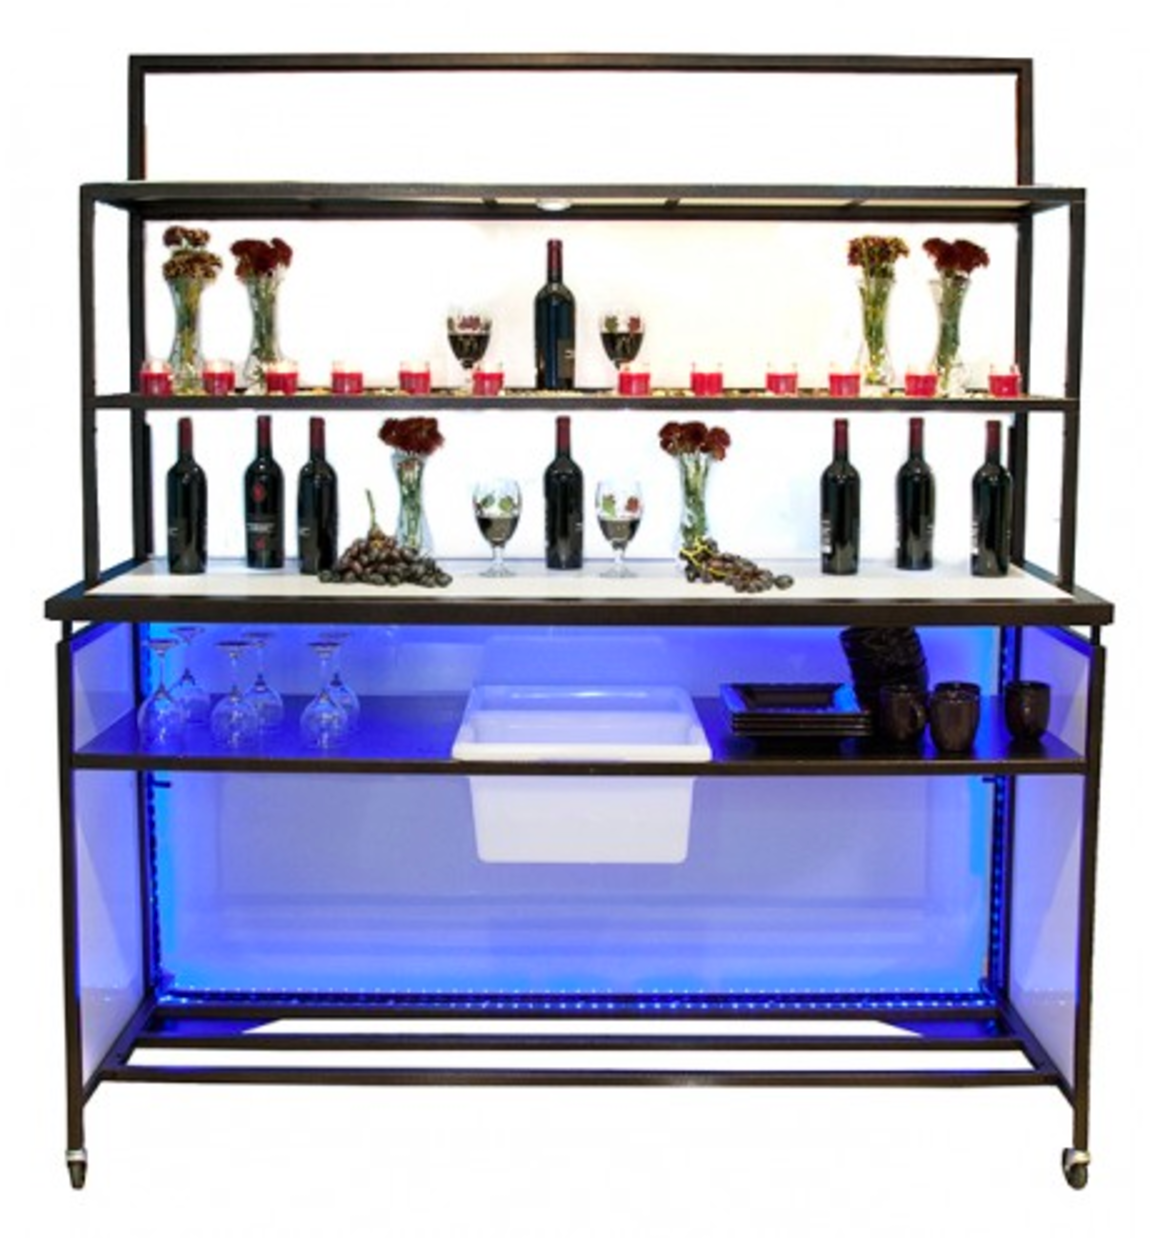 Portable folding back bar setup